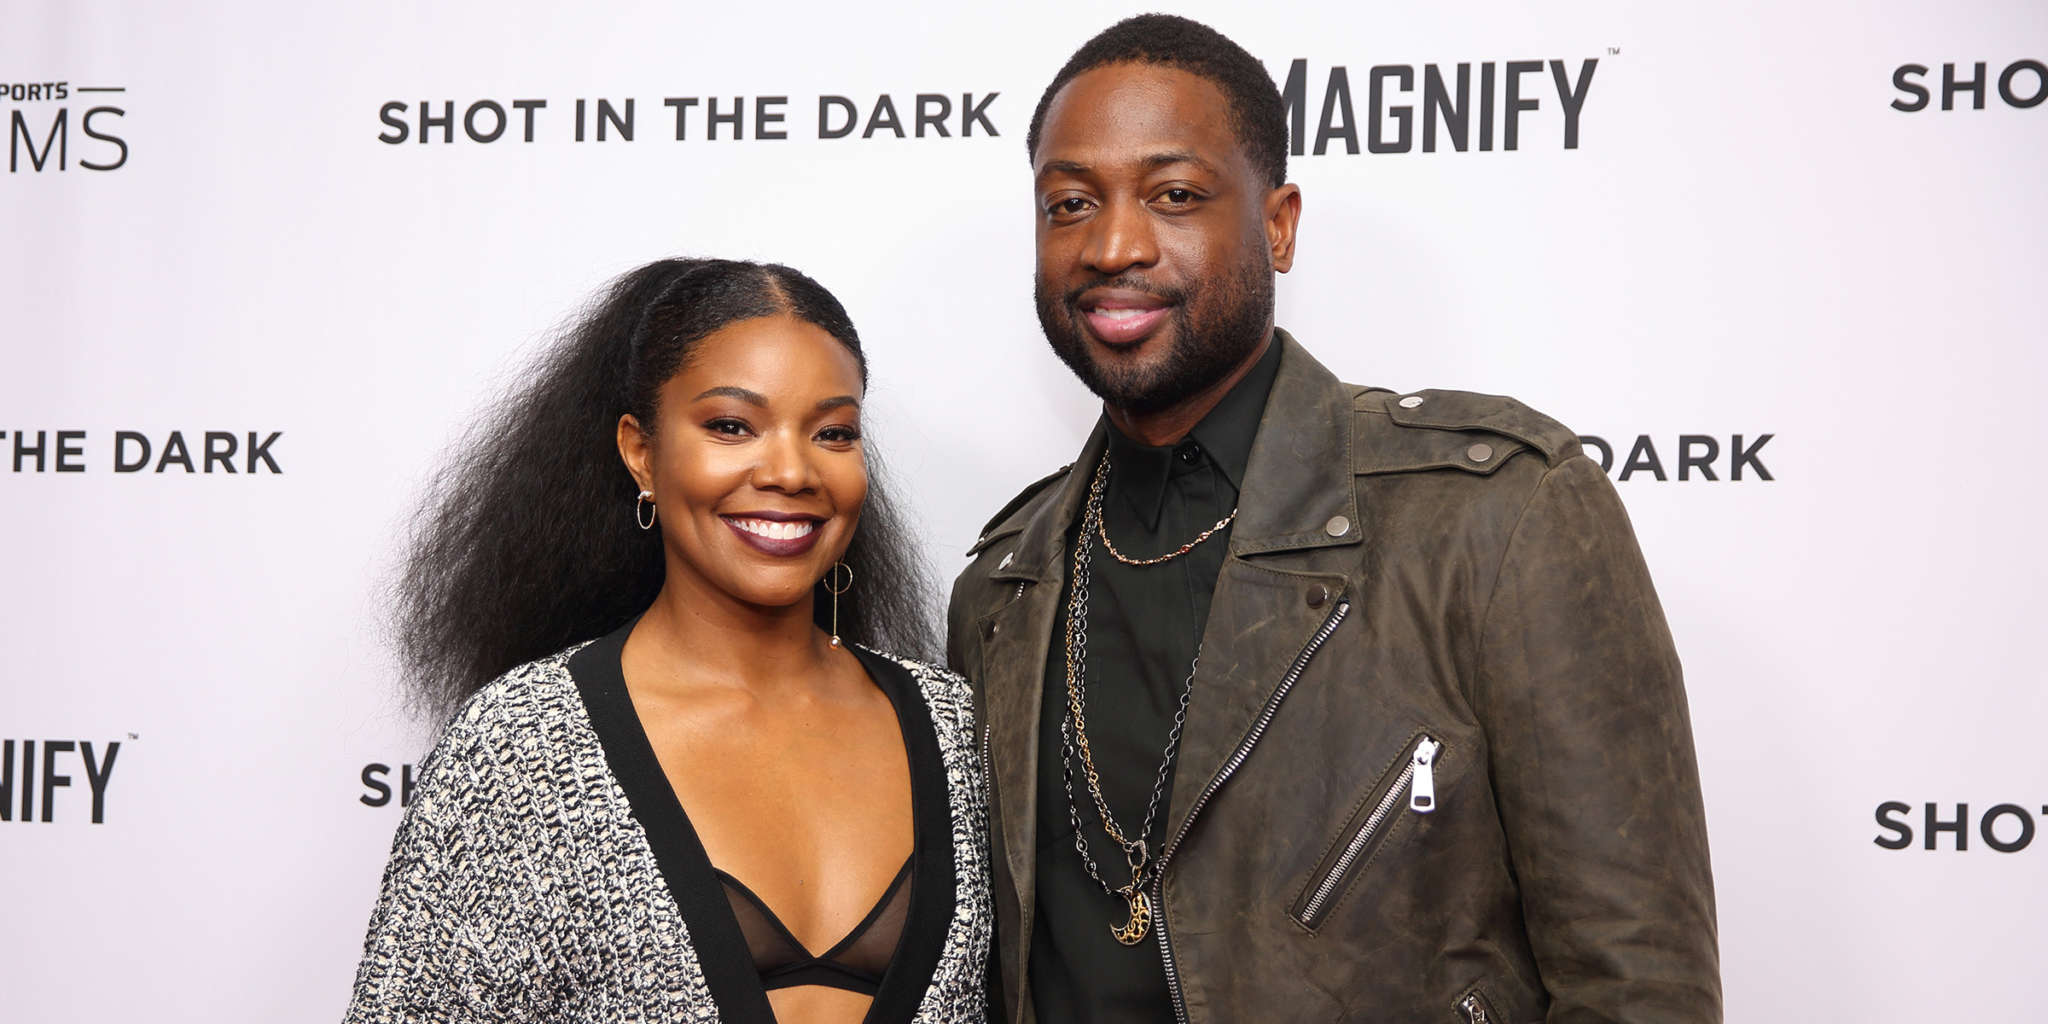 Dwayne Wade Triggers A Debate Among Fans After Showing Support For 'His Girls'